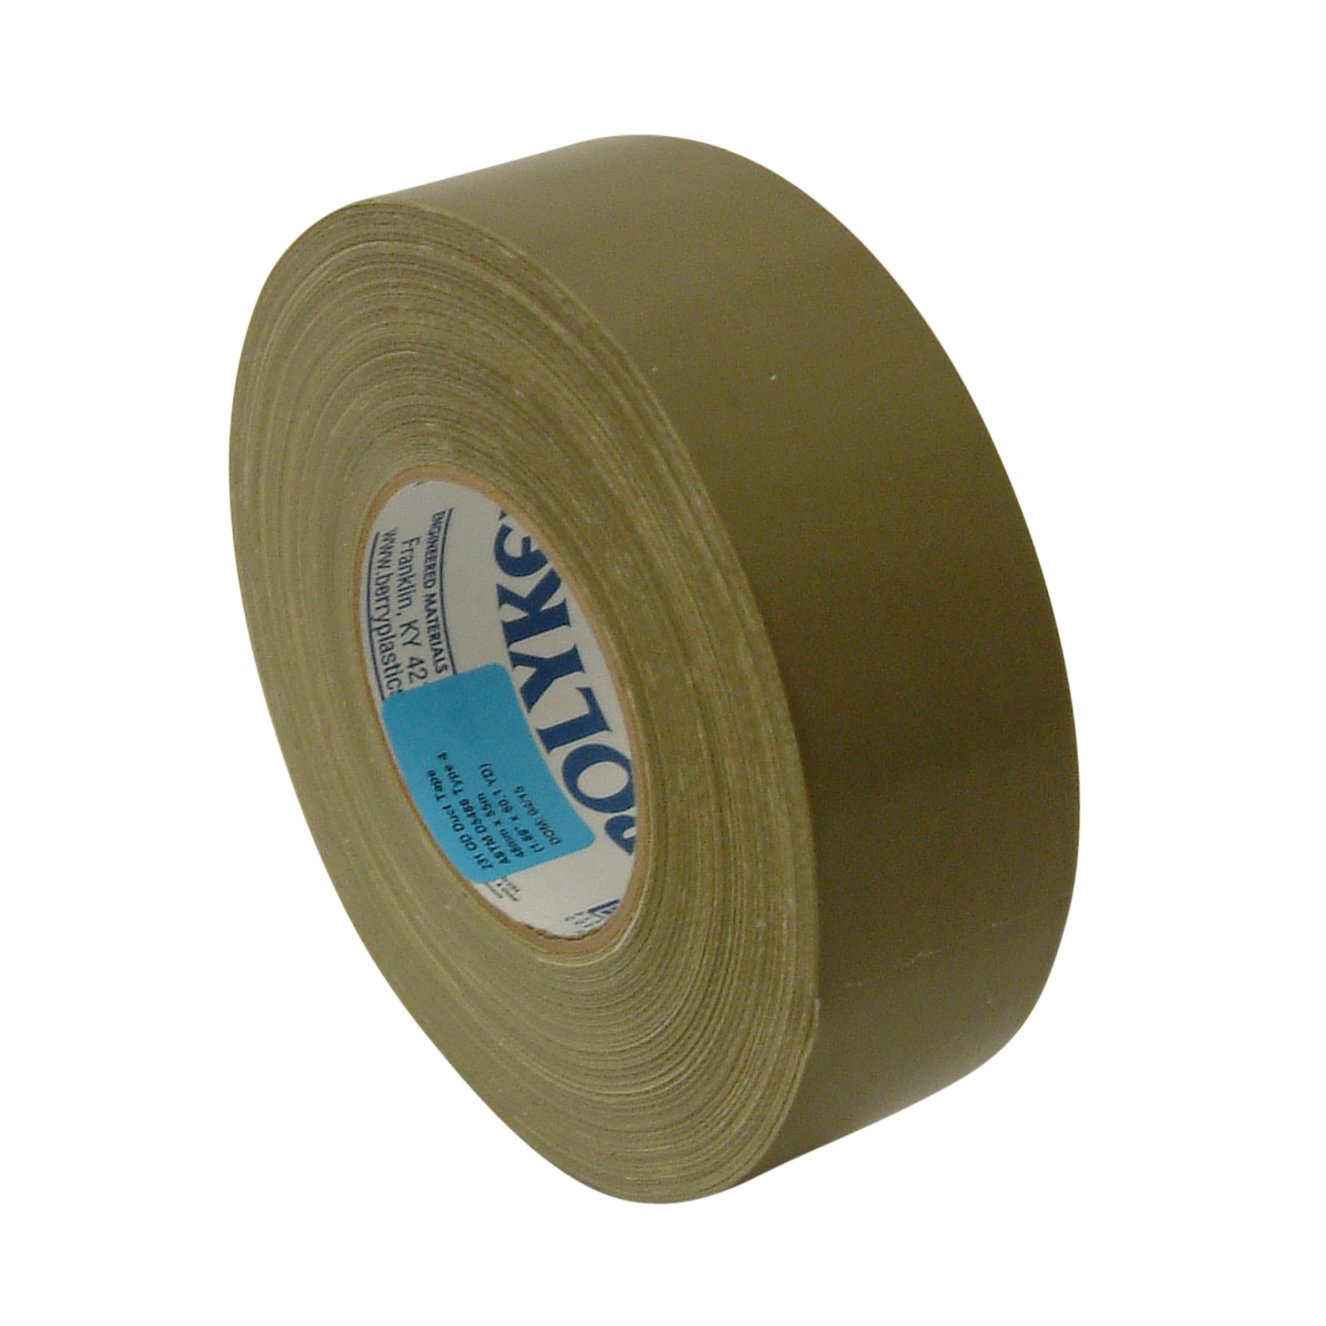 Polyken 231/OD20160 231 Military Grade Duct Tape: 2'' x 60 yd. Branded, Olive Drab